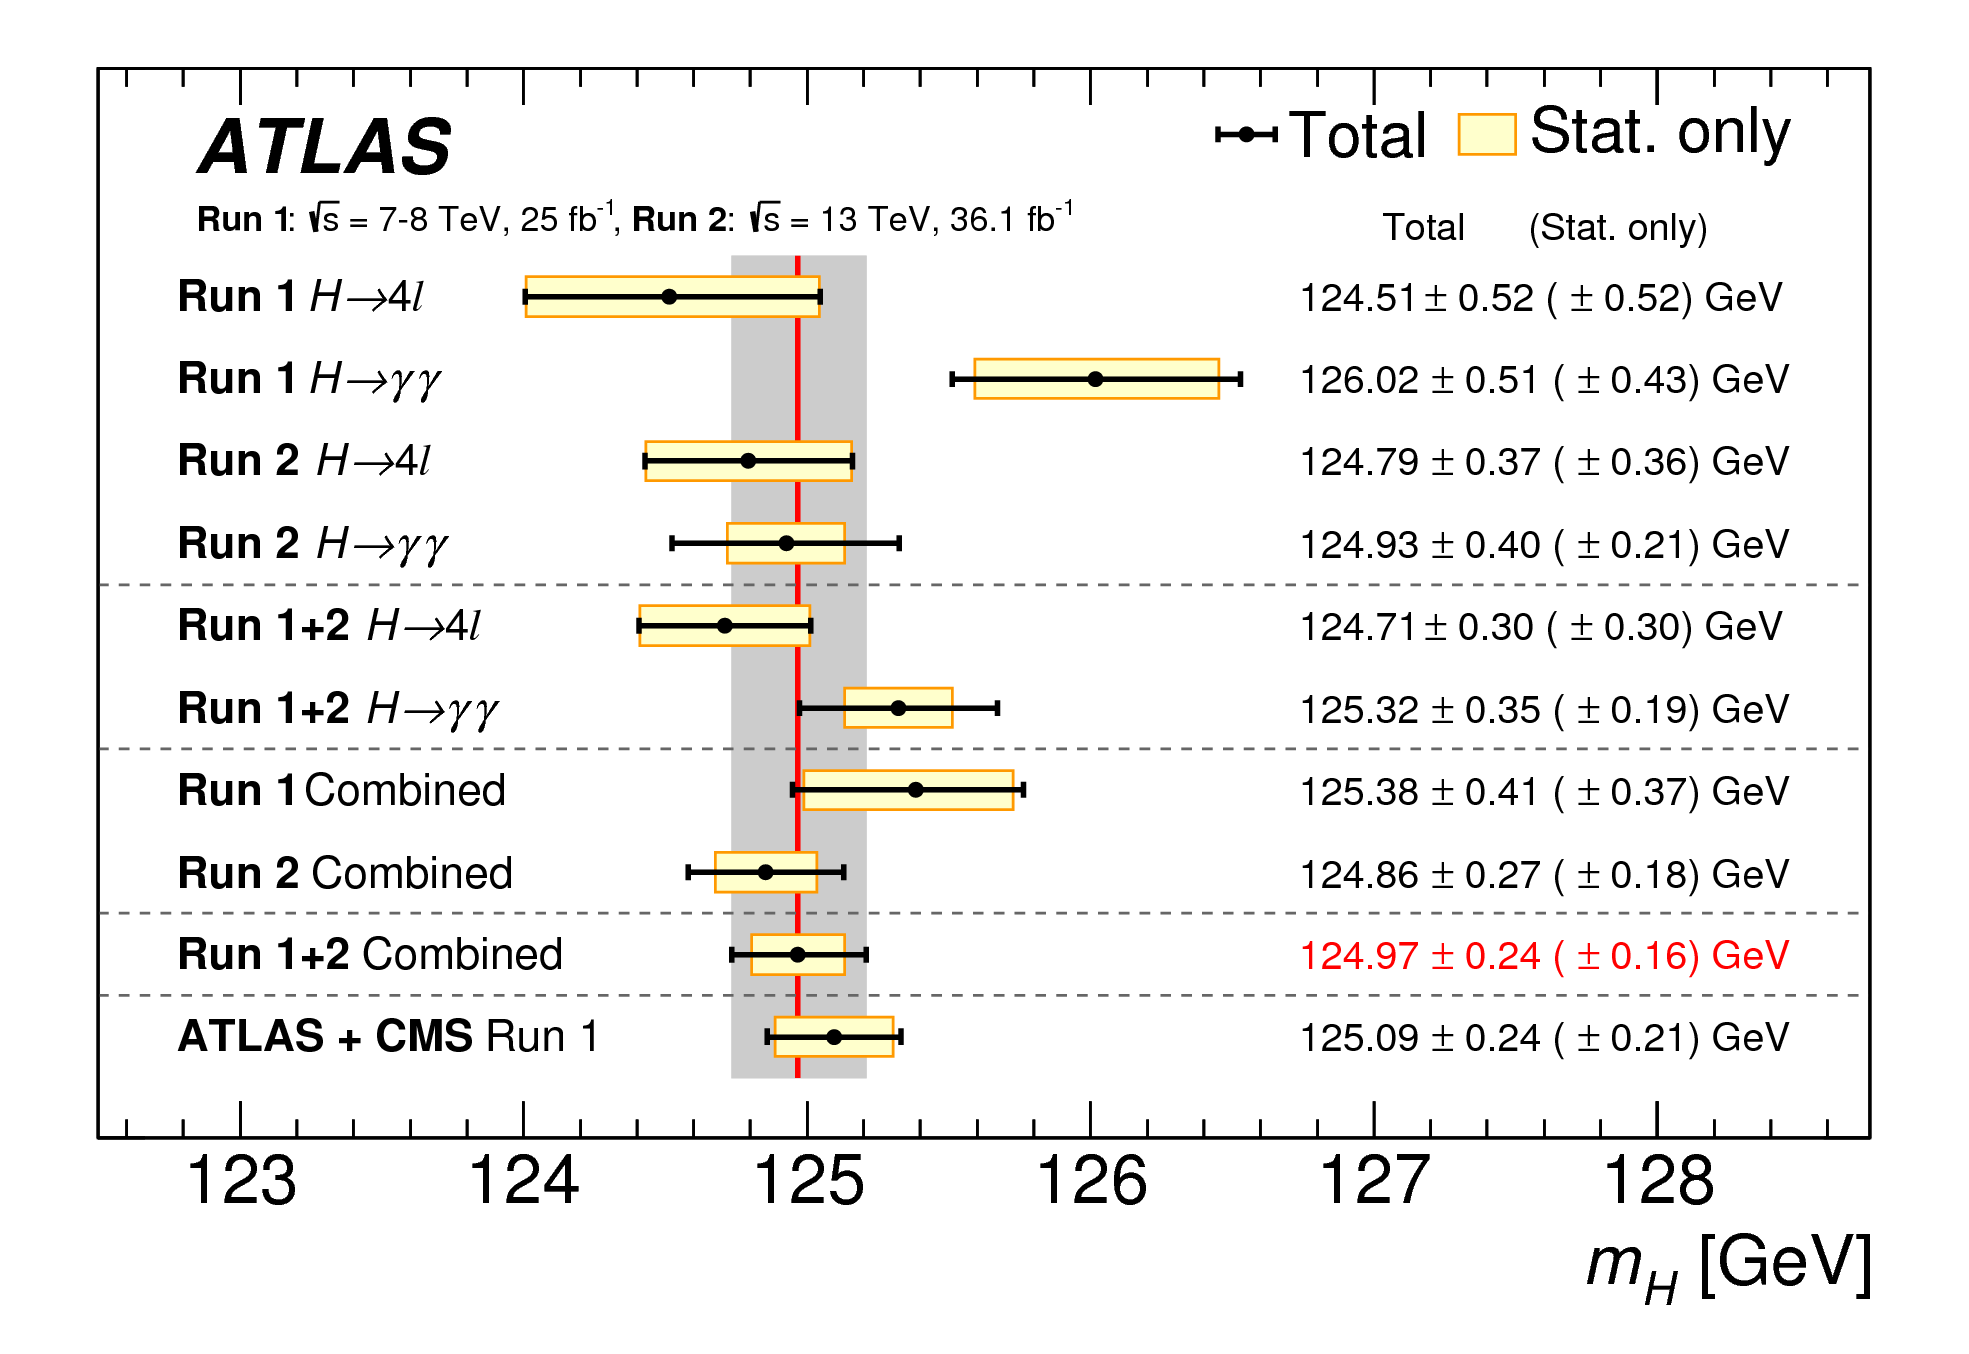 https://atlas.web.cern.ch/Atlas/GROUPS/PHYSICS/CombinedSummaryPlots/HIGGS/ATLAS_HIGGS1100_mass_Summary/ATLAS_HIGGS1100_mass_Summary.png